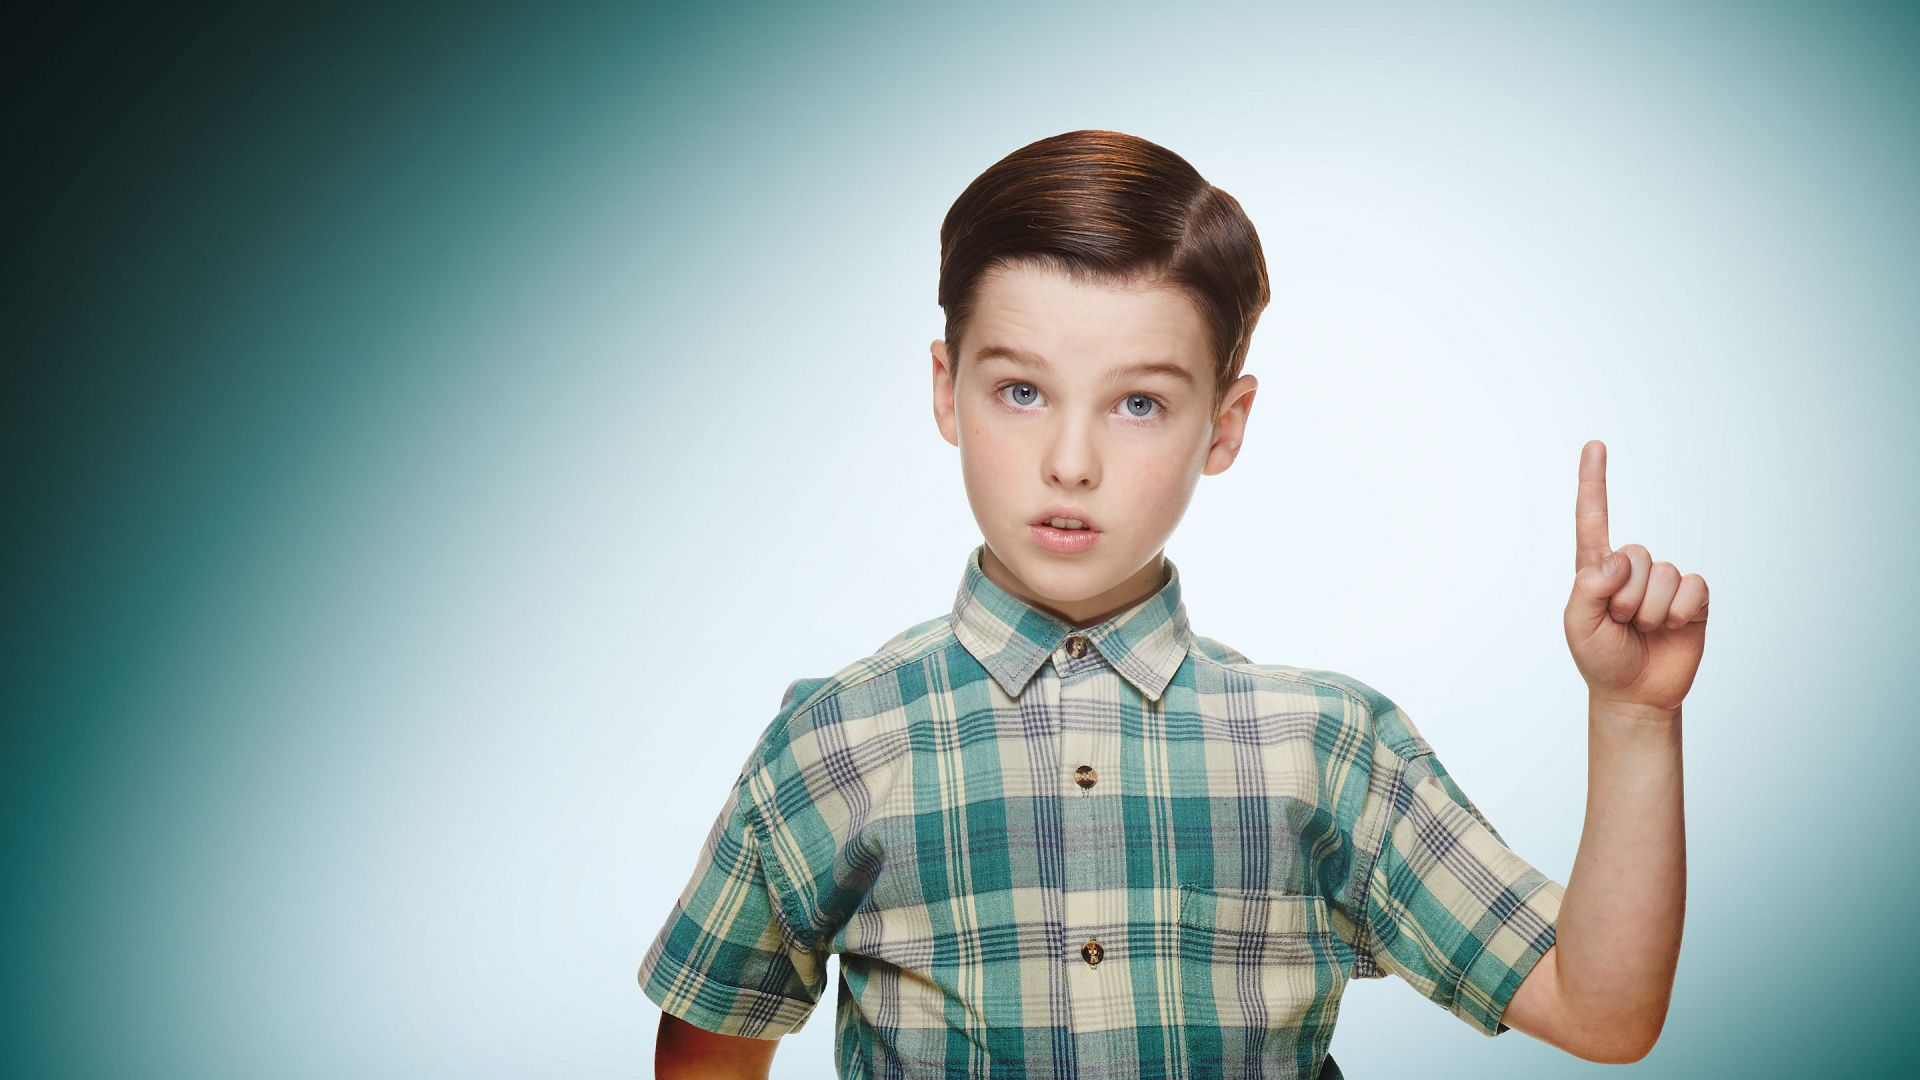 FCC Proposes $272,000 Fine Against CBS for 'Young Sheldon' Alleged Emergency Tone Misuse